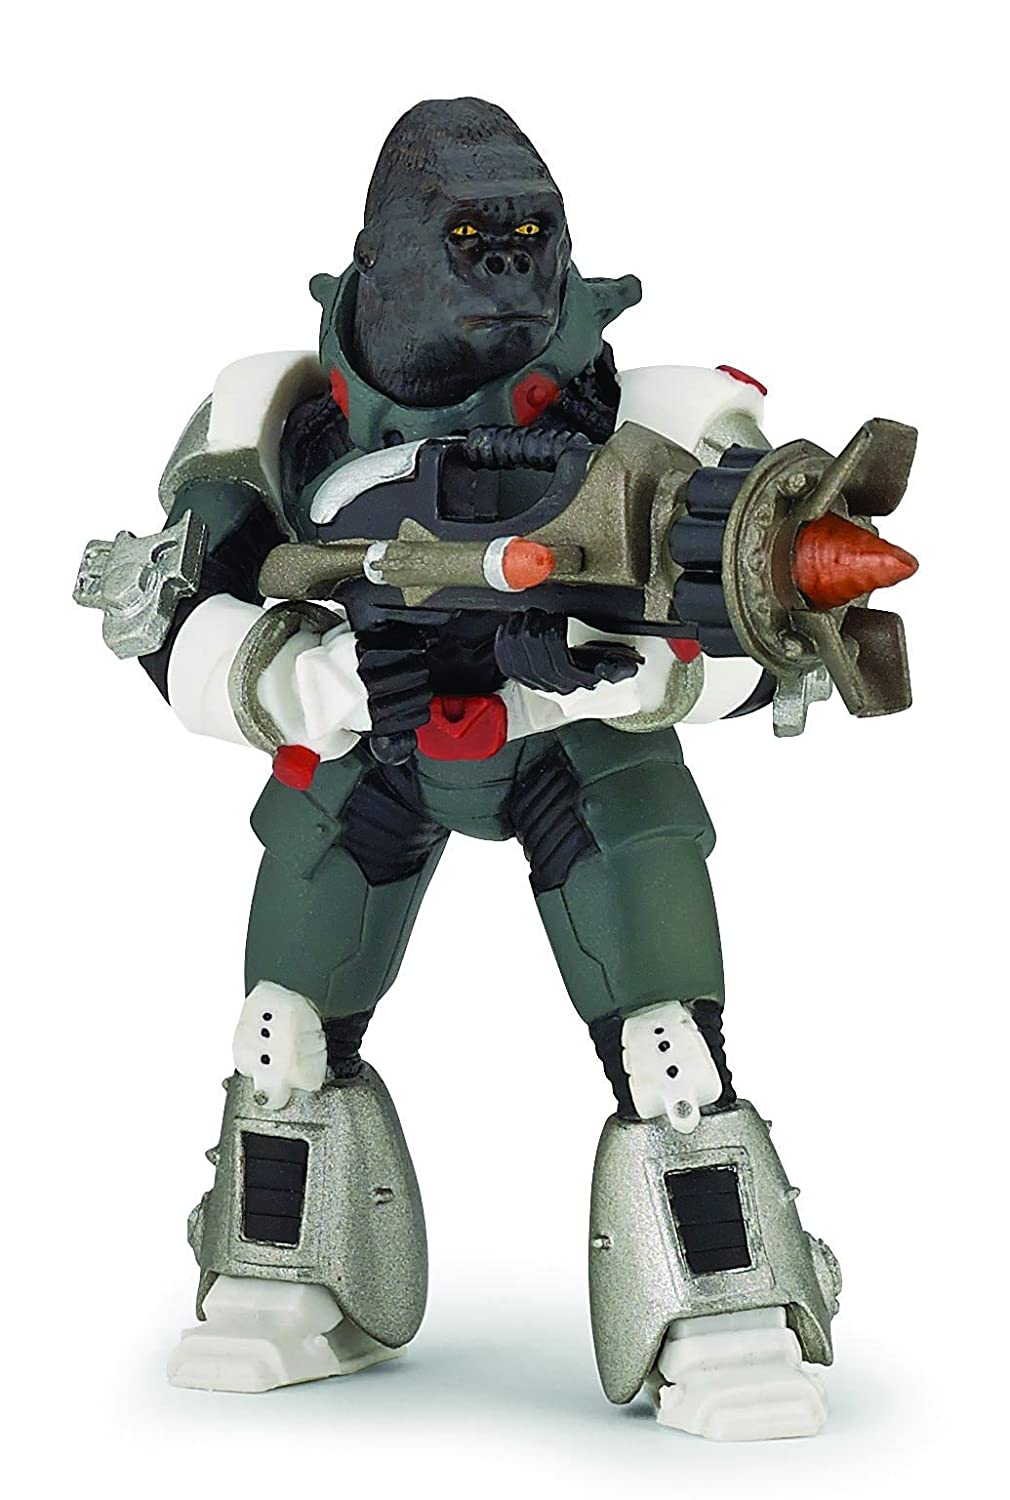 Papo Gorilla Warrior Toy Figure Hotaling 70124